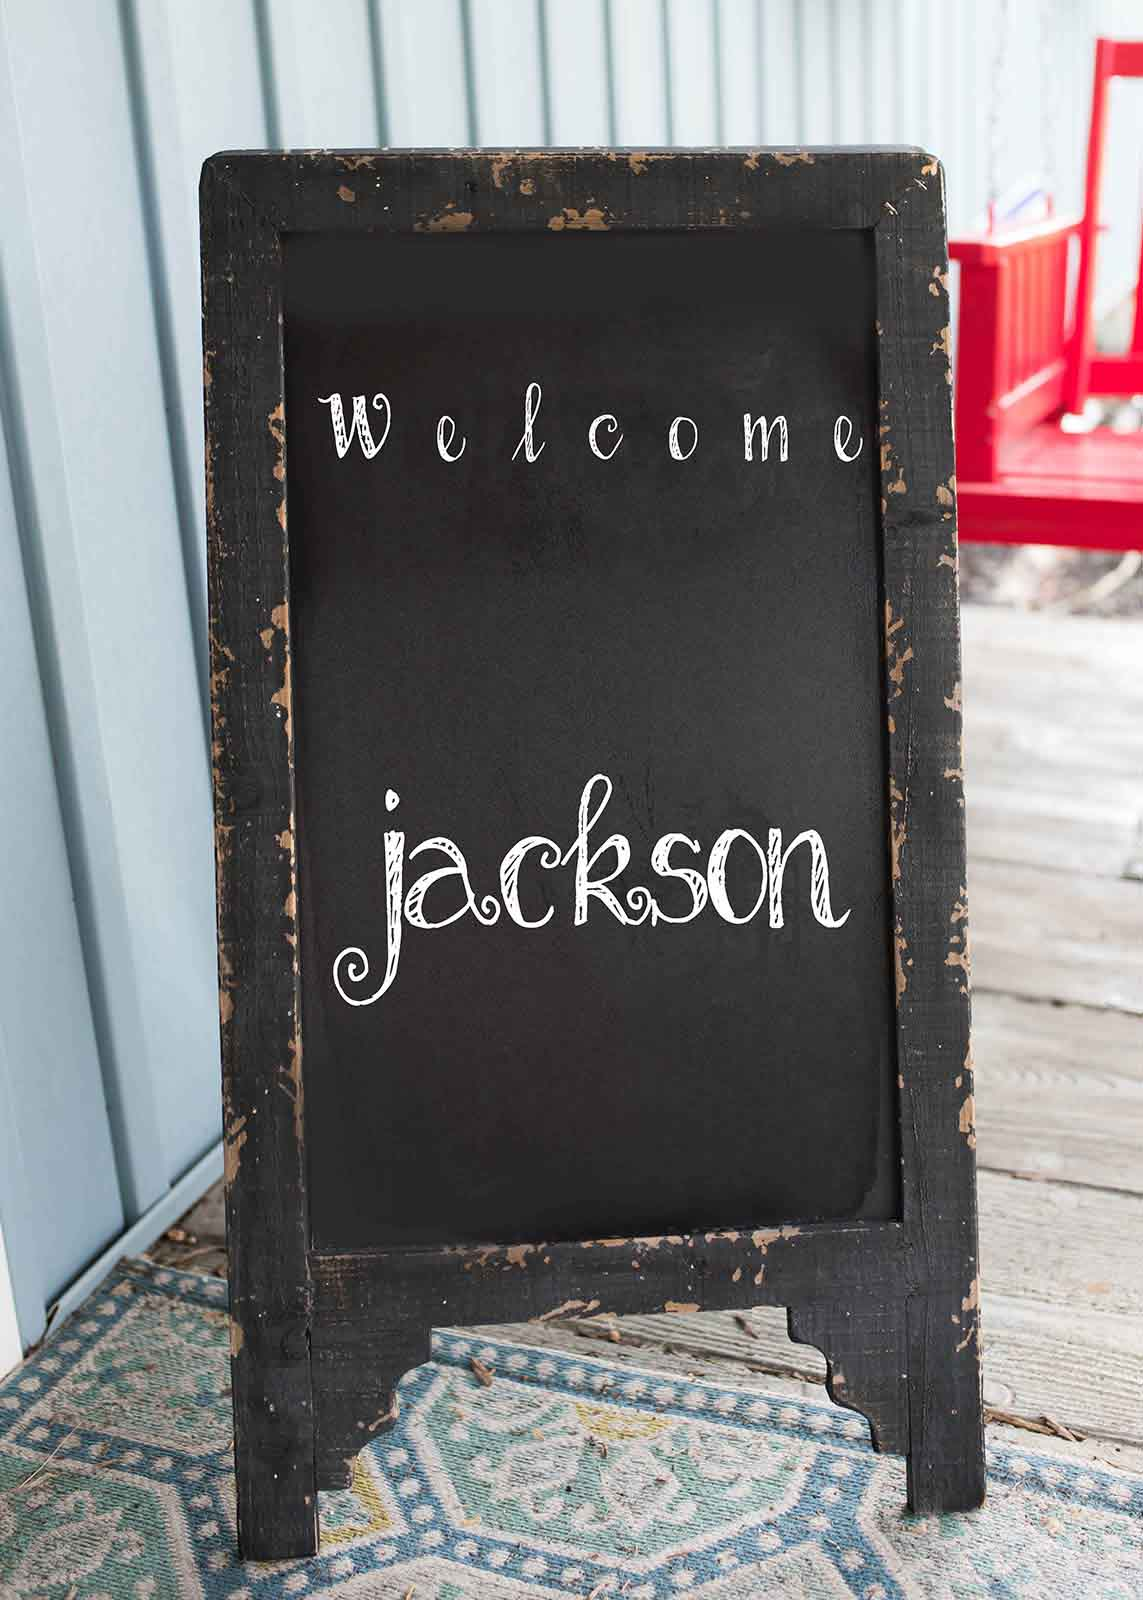 A welcome sign creates a great client experience for photographers